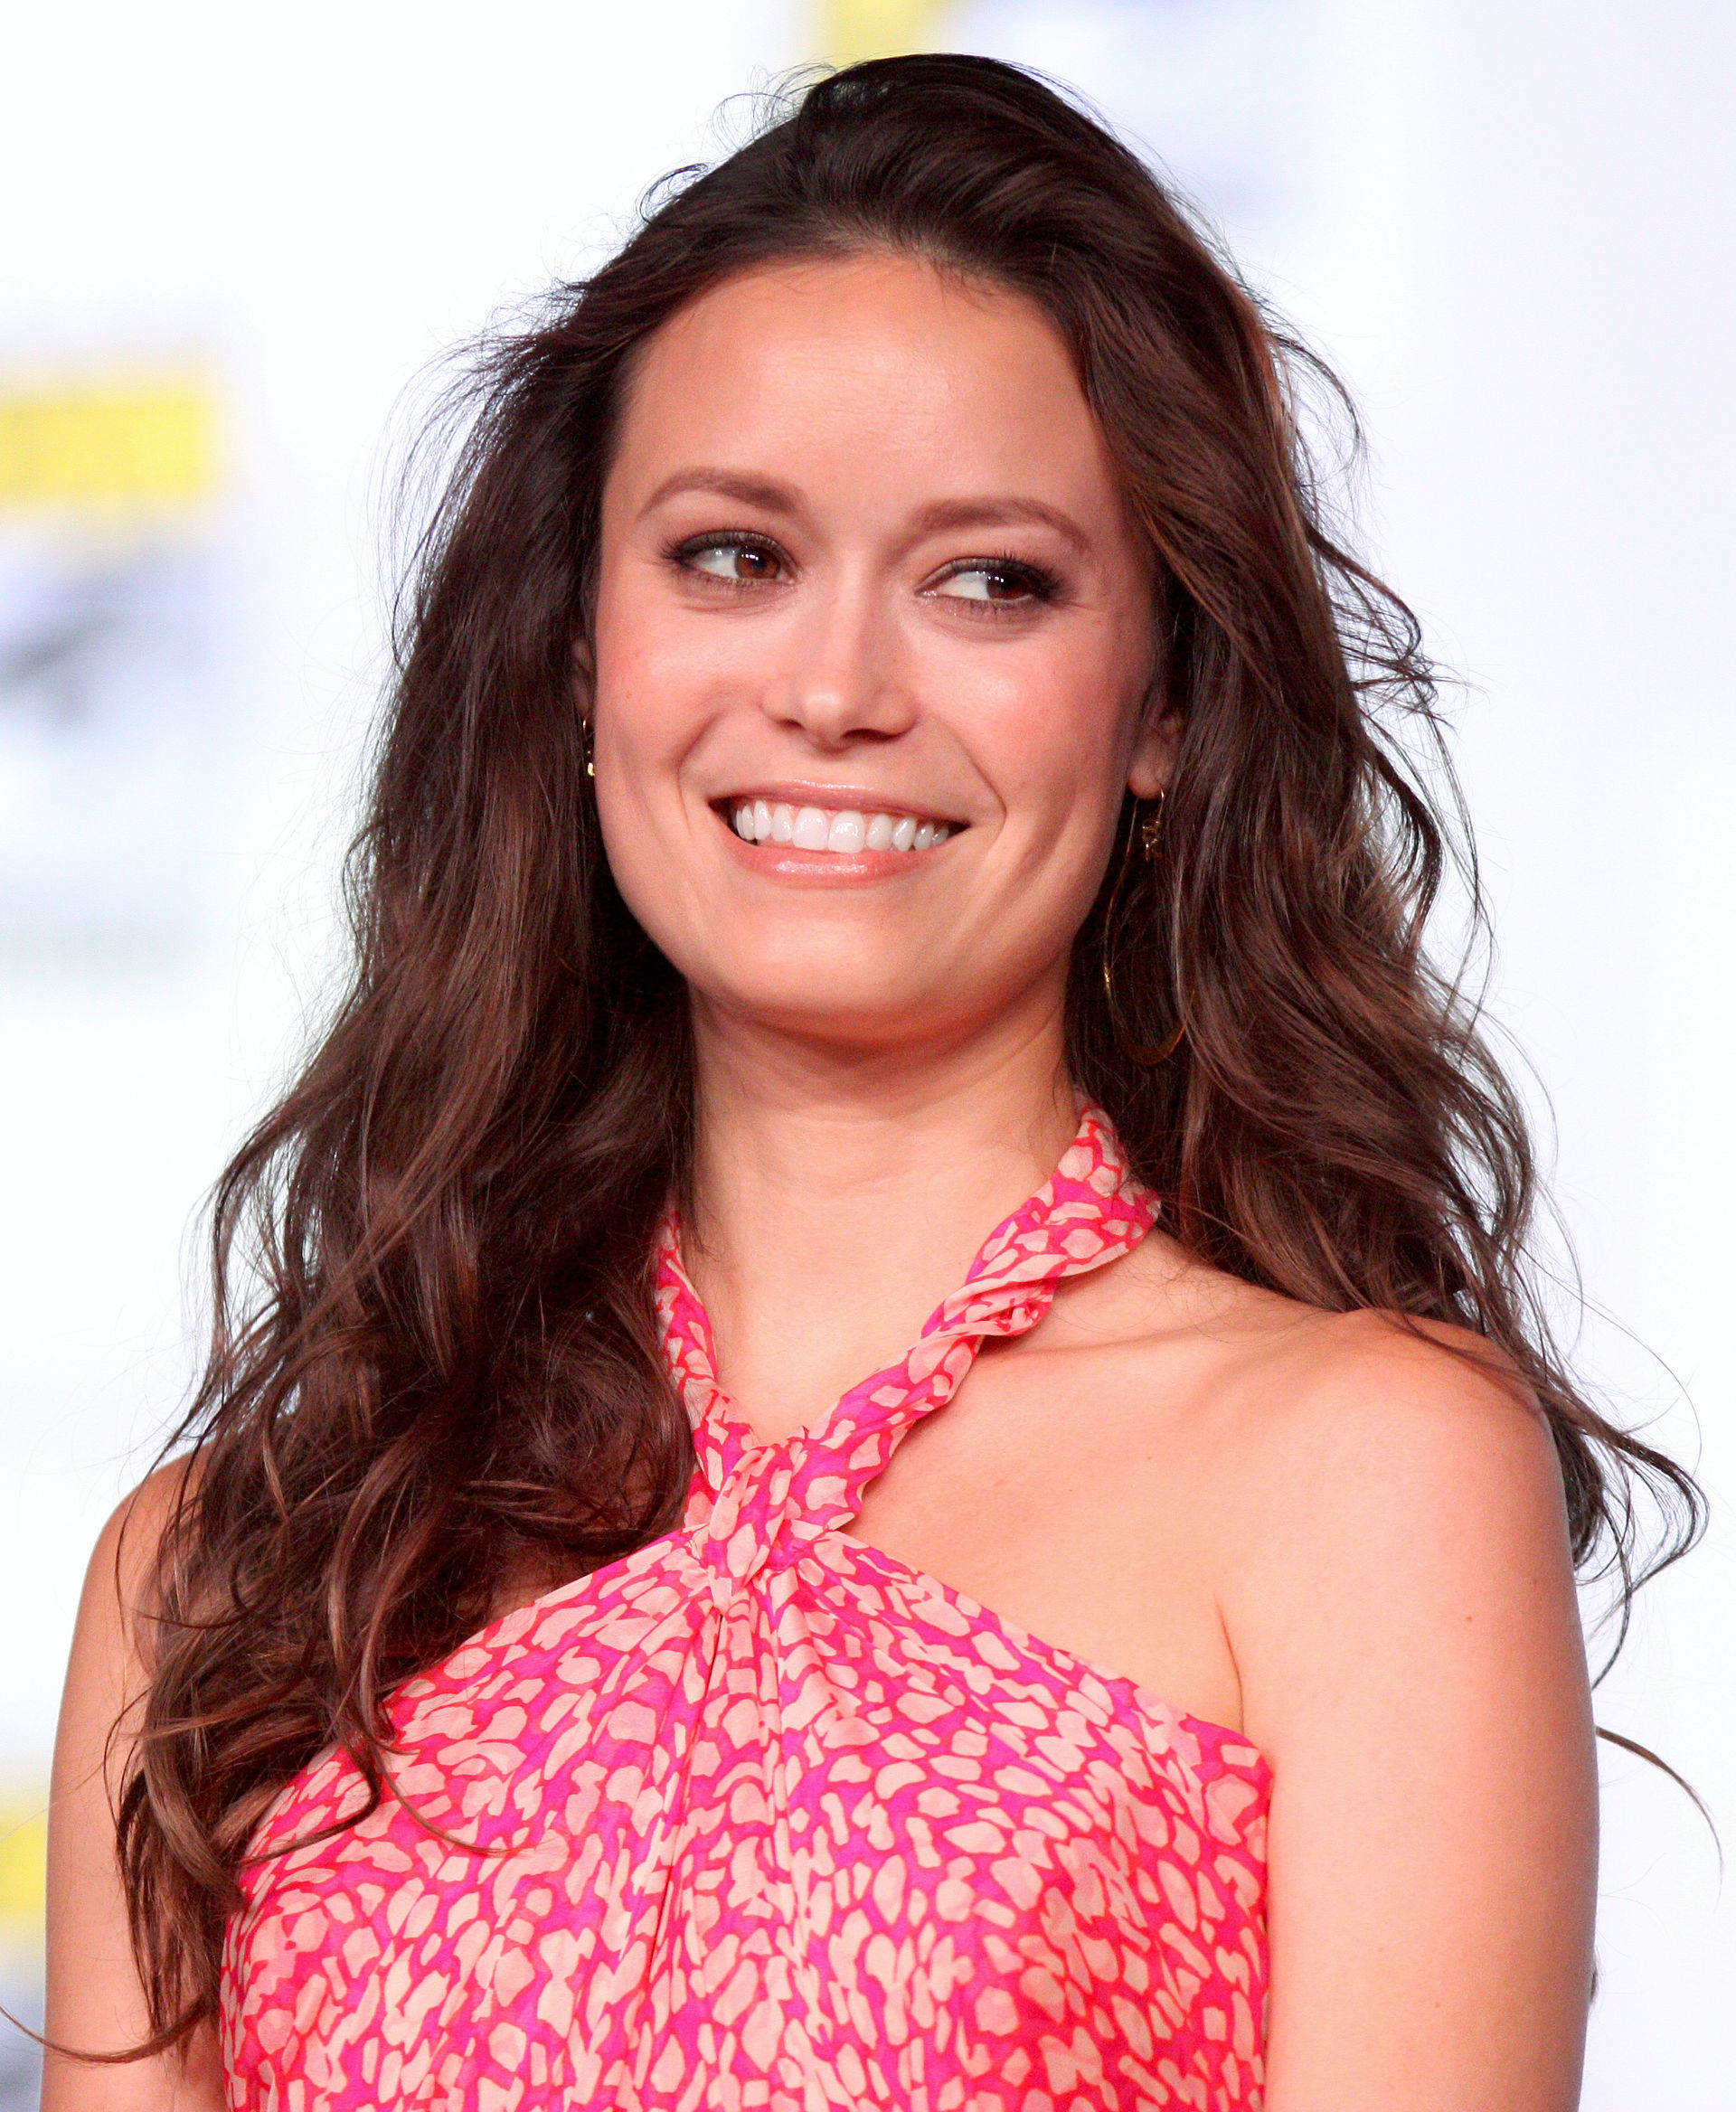 summer glau wikip dia. Black Bedroom Furniture Sets. Home Design Ideas